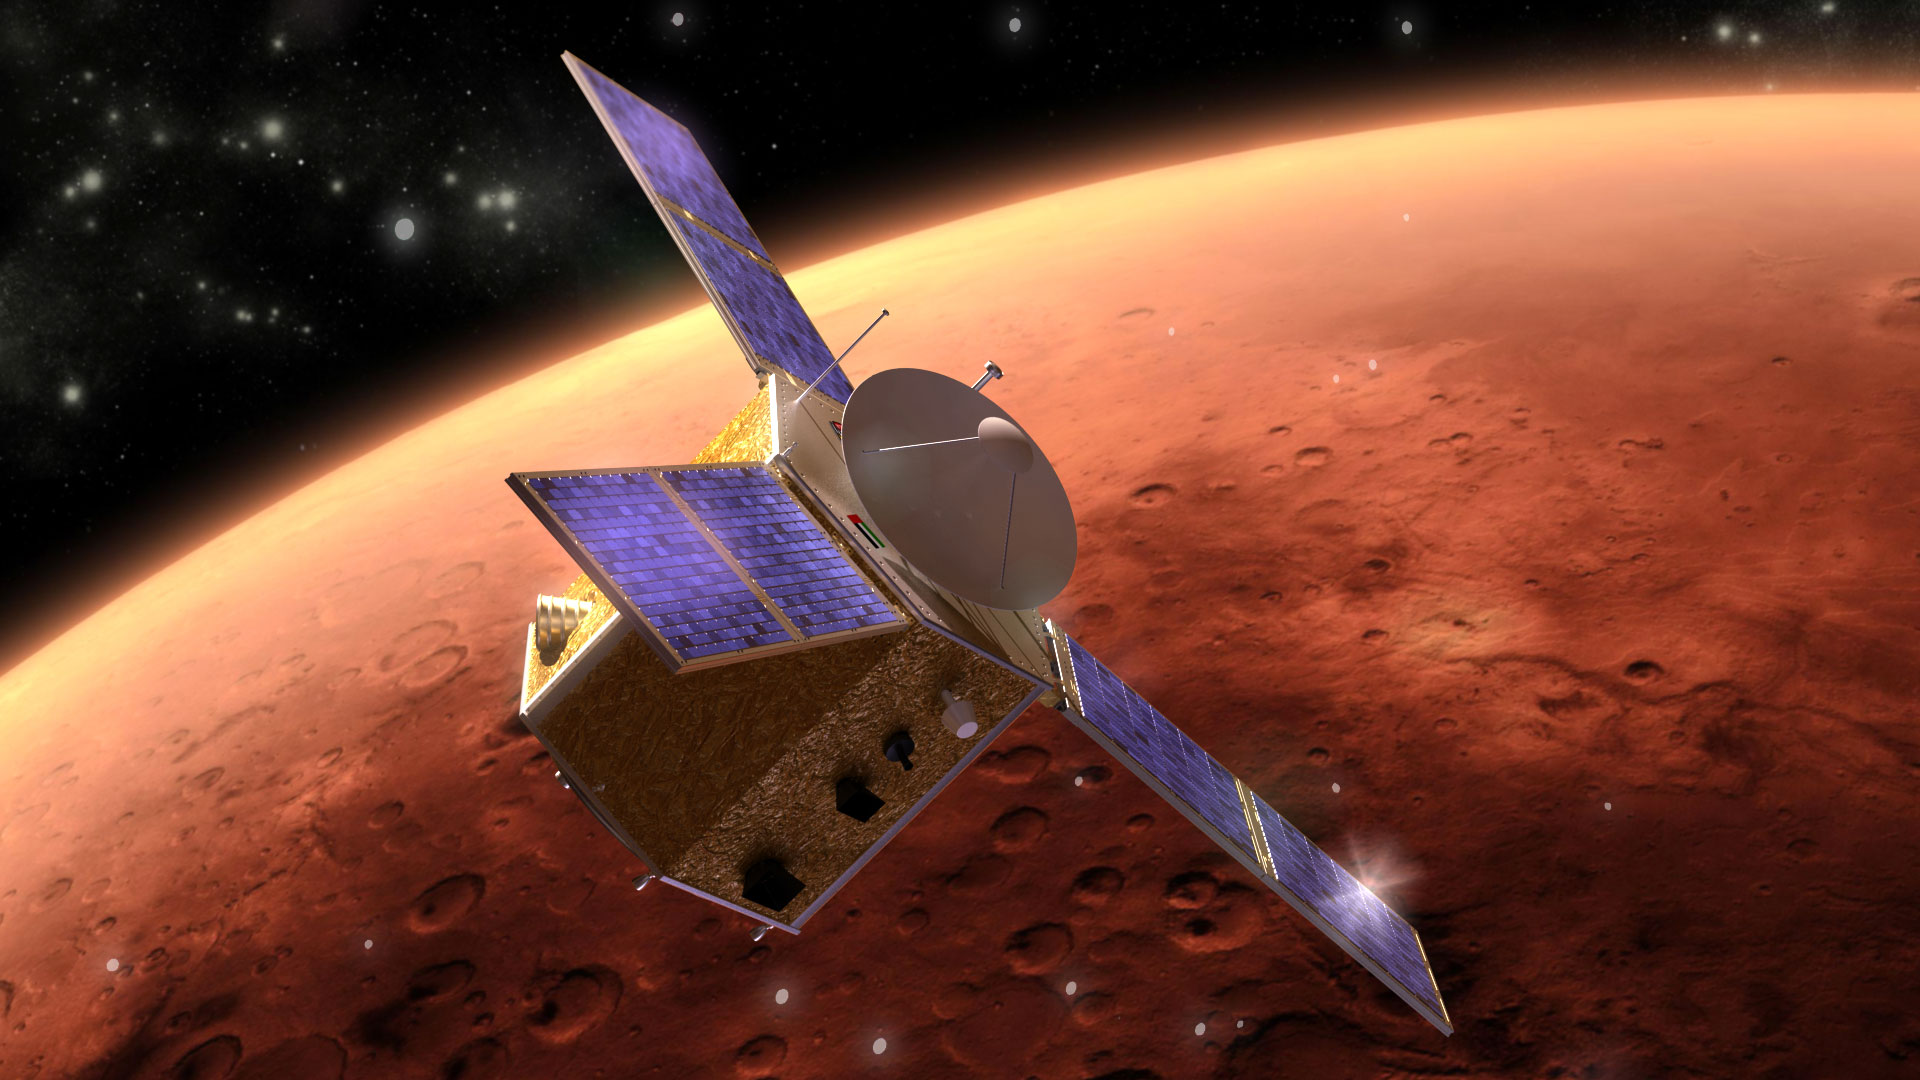 Emirates Mars Mission: the Hope probe